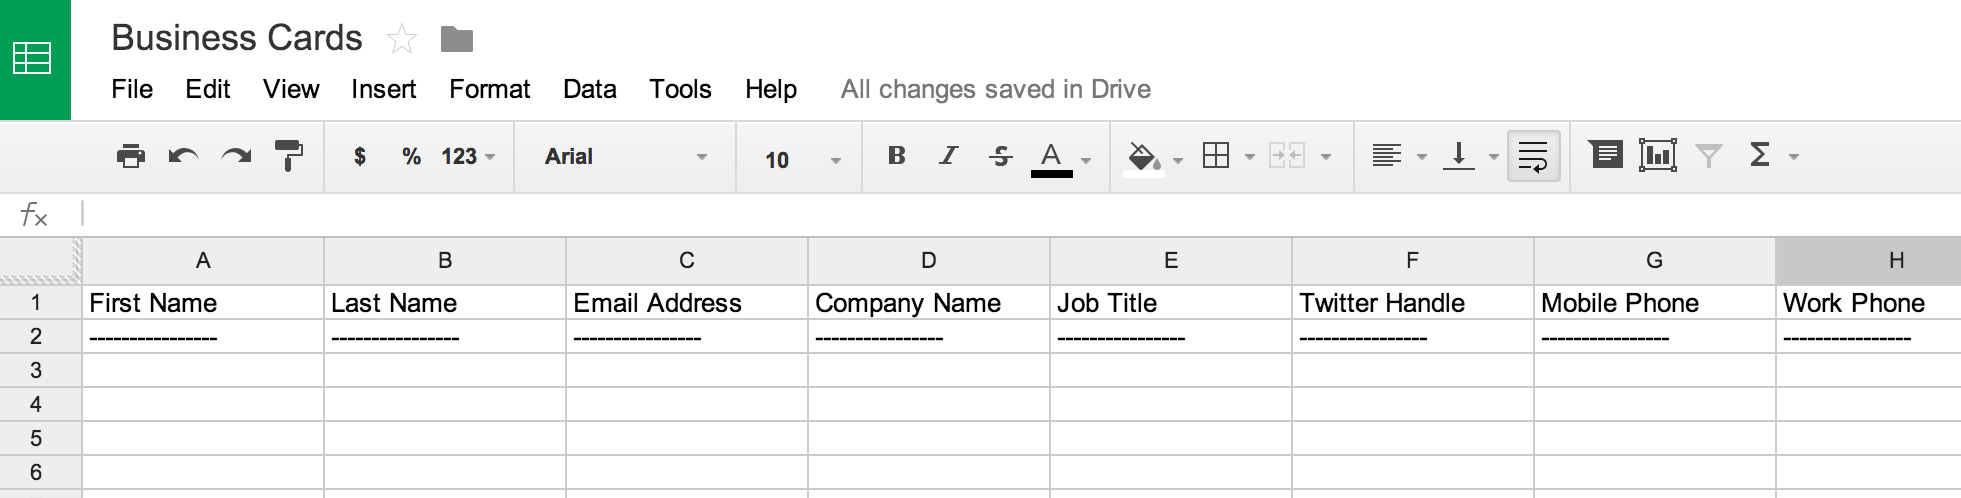 How to Scan Business Cards into a Spreadsheet